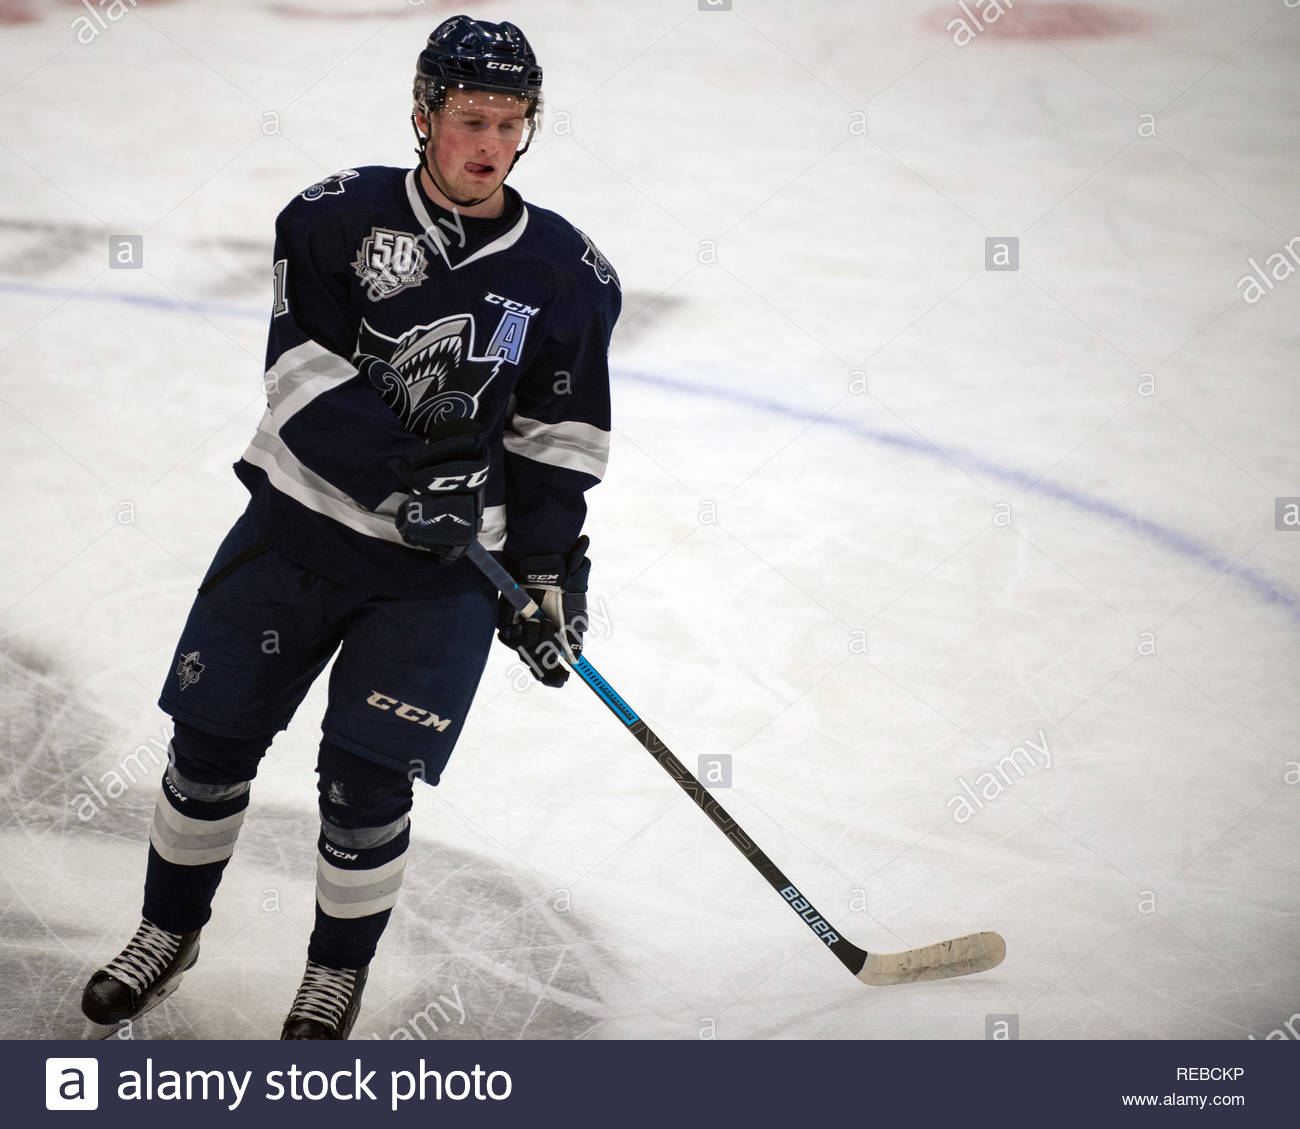 Gatineau, Canada - January 19, 2019:  Alexis Lafrenière of the Rimouski Océanic warms up before the Quebec Major Jr League game against the Gatineau Olympiques at the Robert Guertin Arena.  He is currently touted as the first pick in the 2020 NHL draft. male, boy - Stock Image